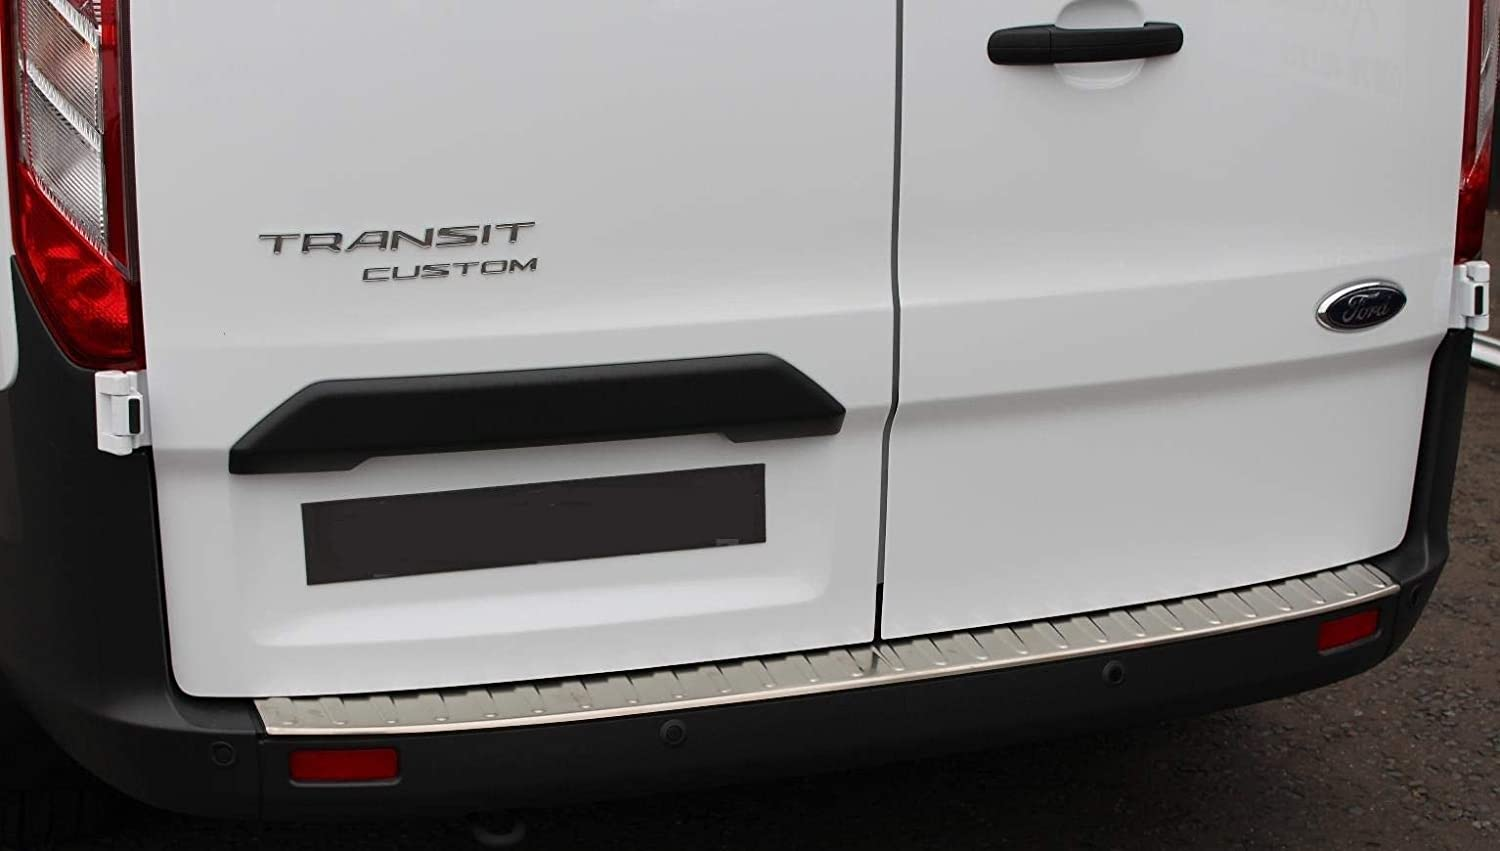 Chromeline TO FIT FORD TOURNEO CUSTOM 2012-2018 CHROME REAR BUMPER PROTECTOR SILL COVER GUARD BRUSHED STAINLESS STEEL